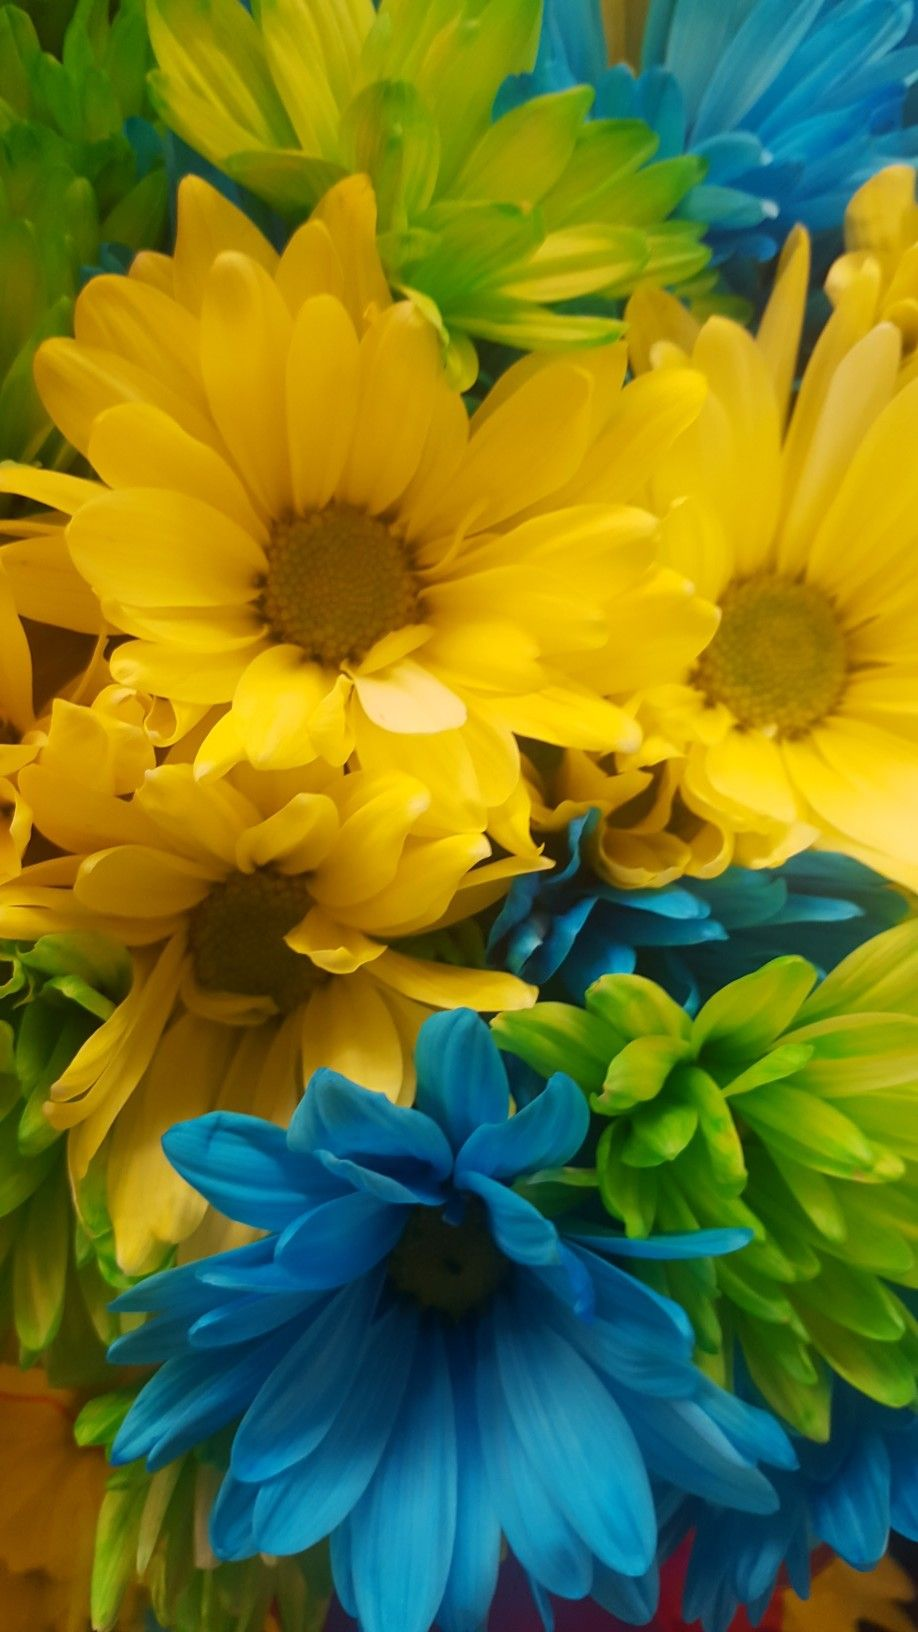 Pin by Rhonda Proffitt on Daisies (With images) Flower